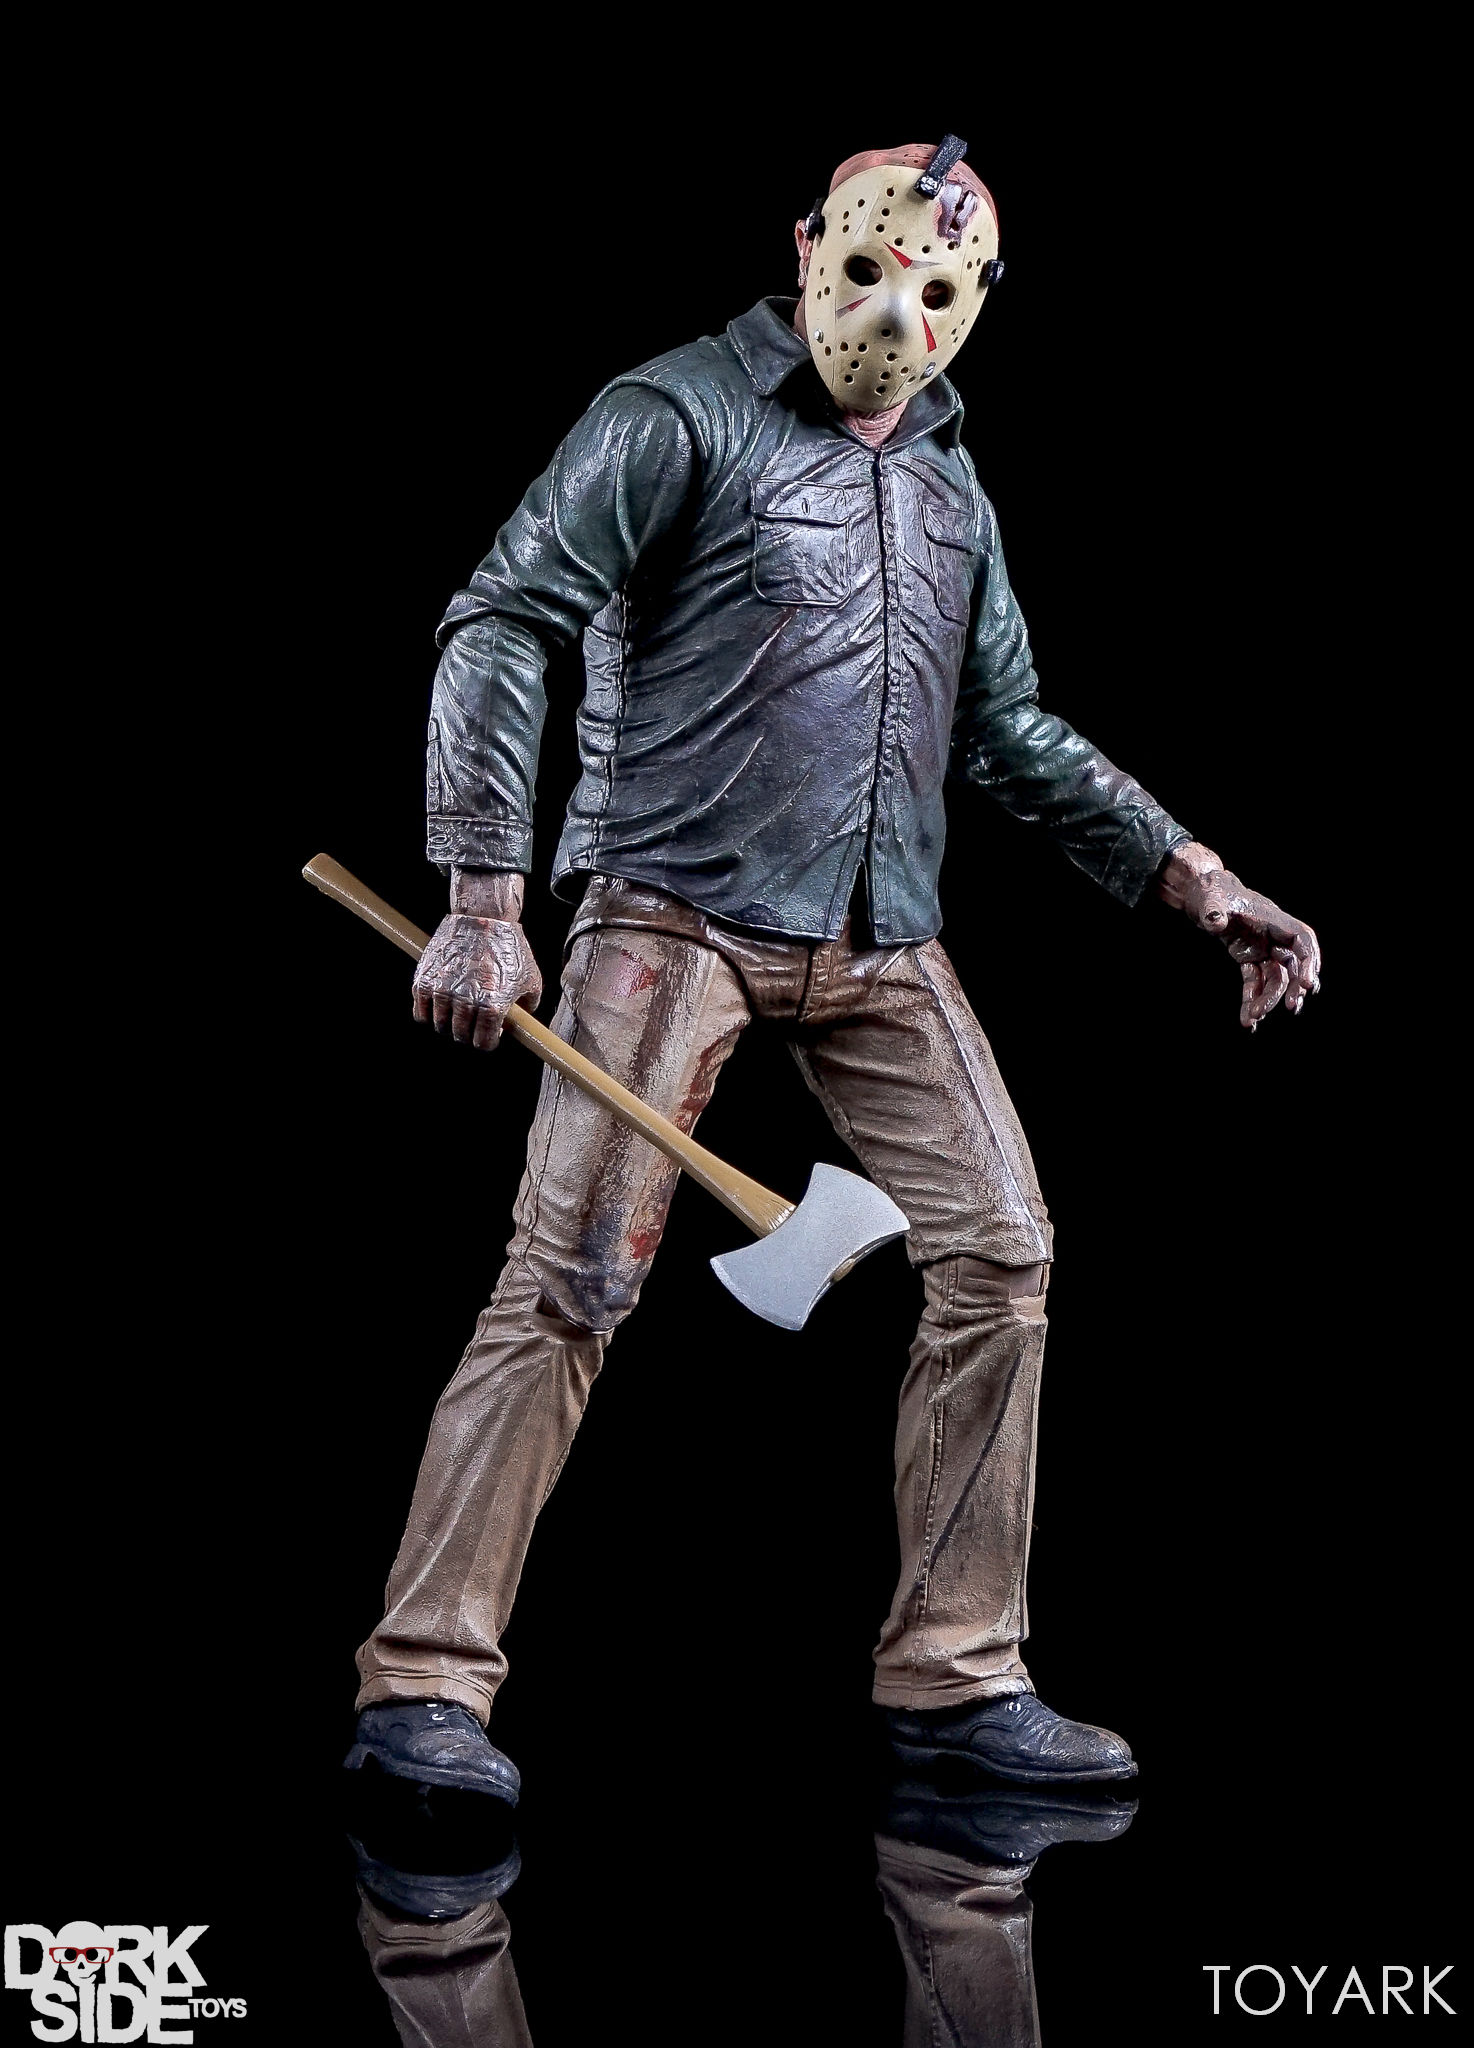 http://news.toyark.com/wp-content/uploads/sites/4/2017/06/Jason-Voorhees-Final-Chapter-Ultimate-025.jpg